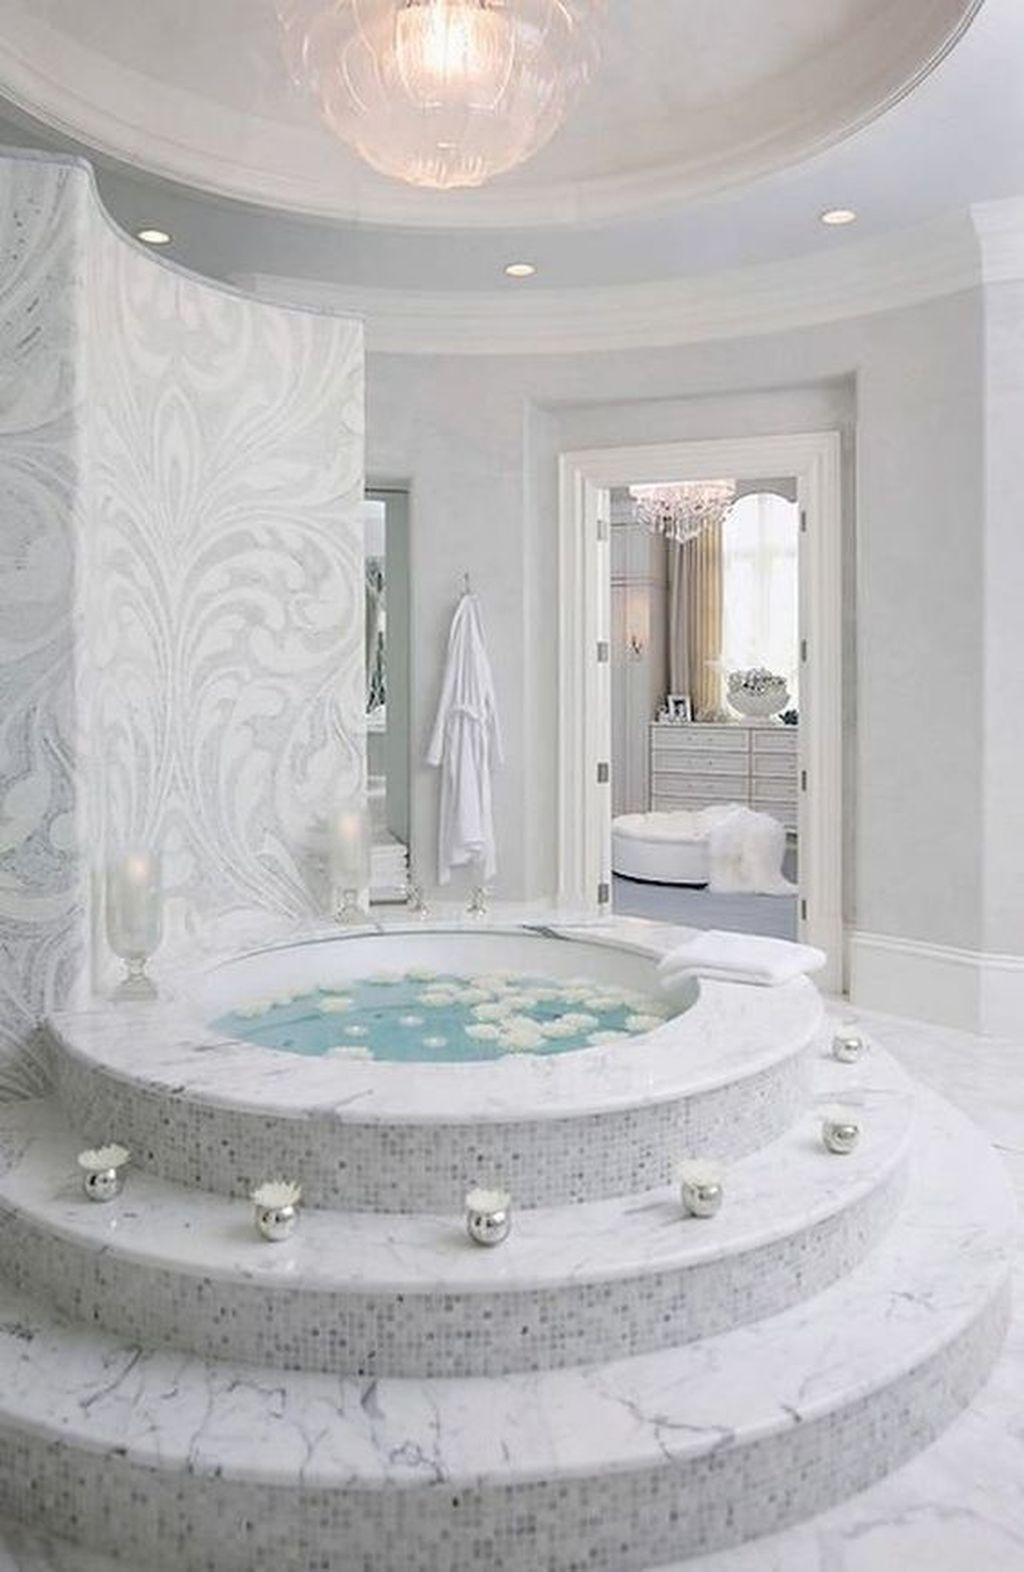 Luxury Bathroom Design And Decor Ideas 01